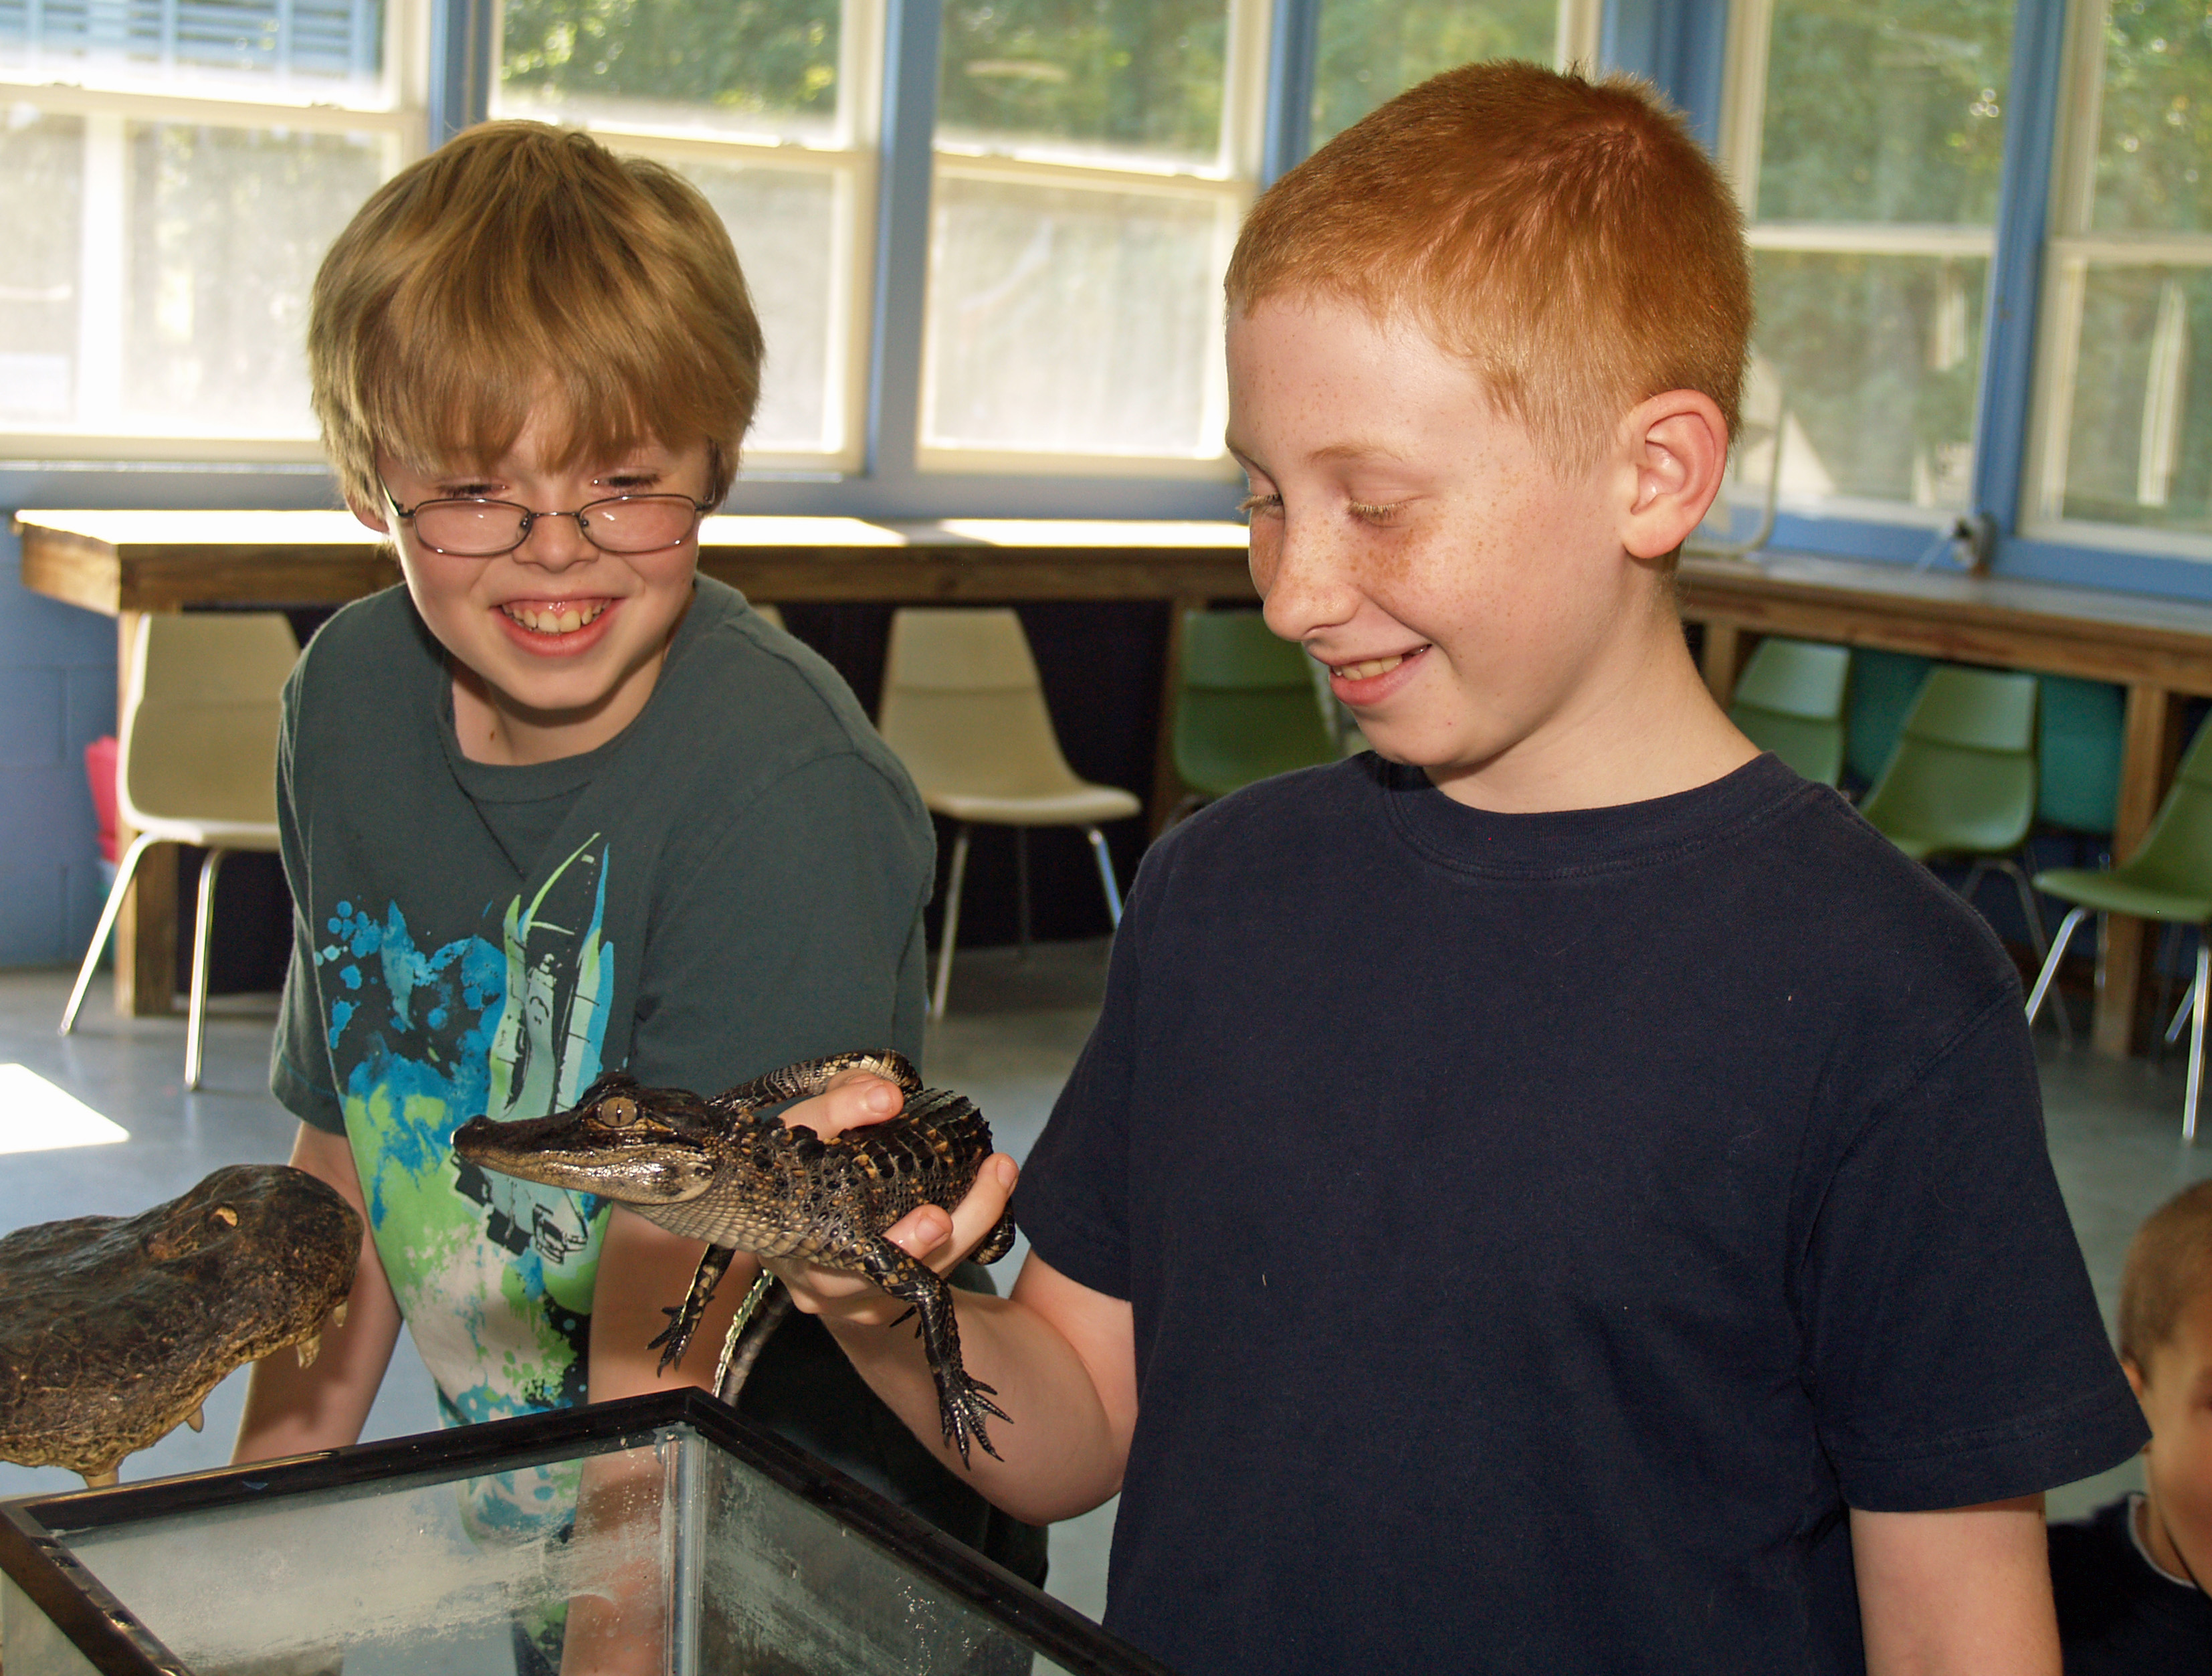 The Reptile Experience fascinates nature lovers of all ages.